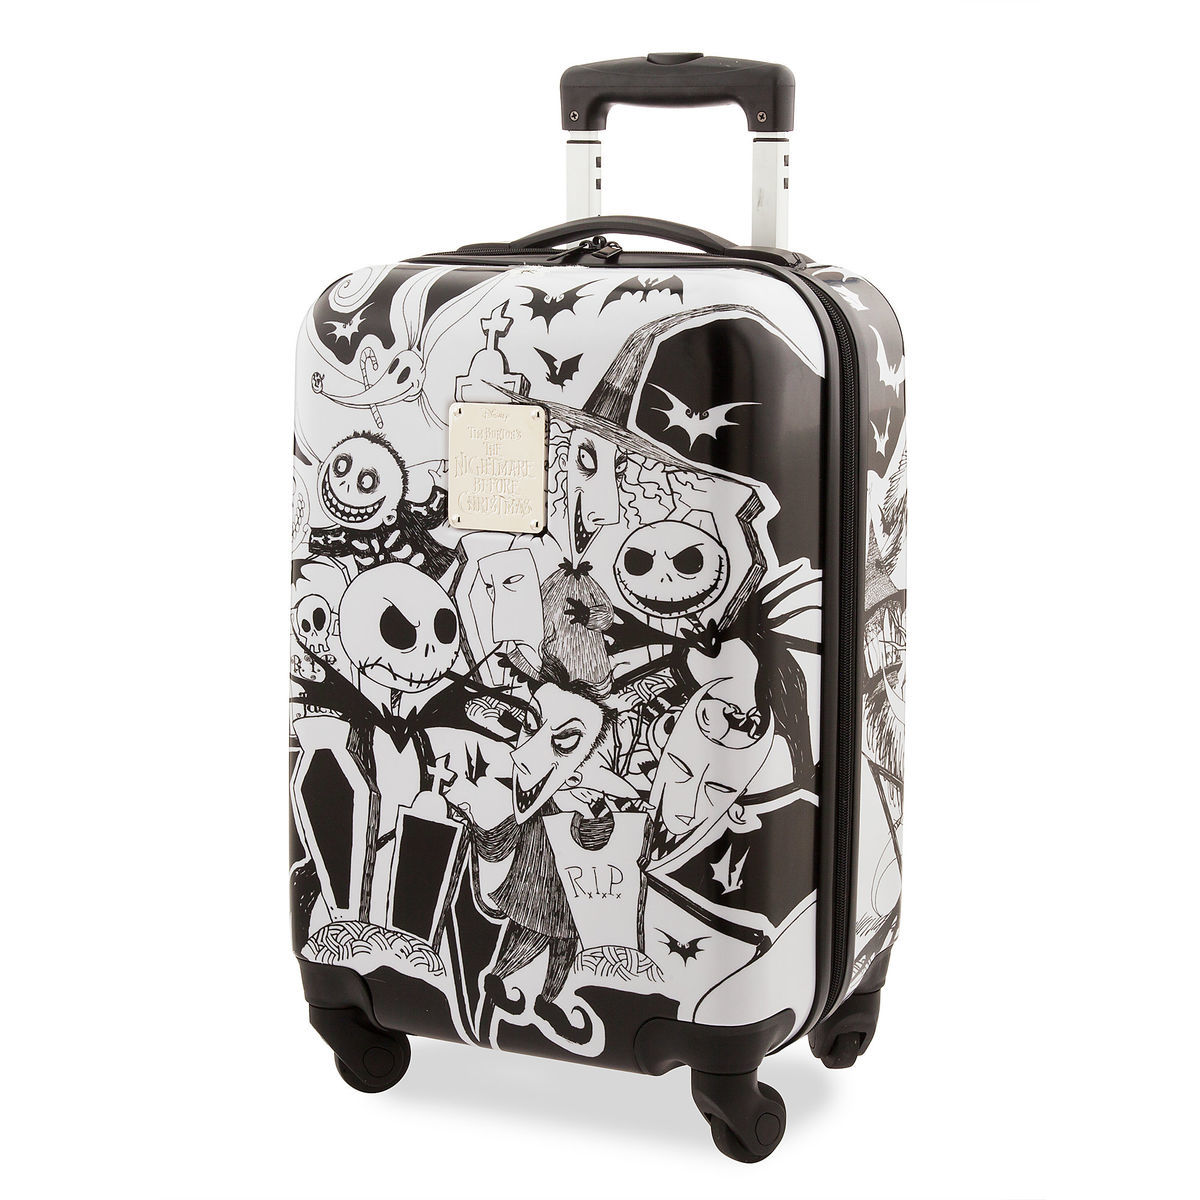 Disney Luggage for Your Summer Vacation 6